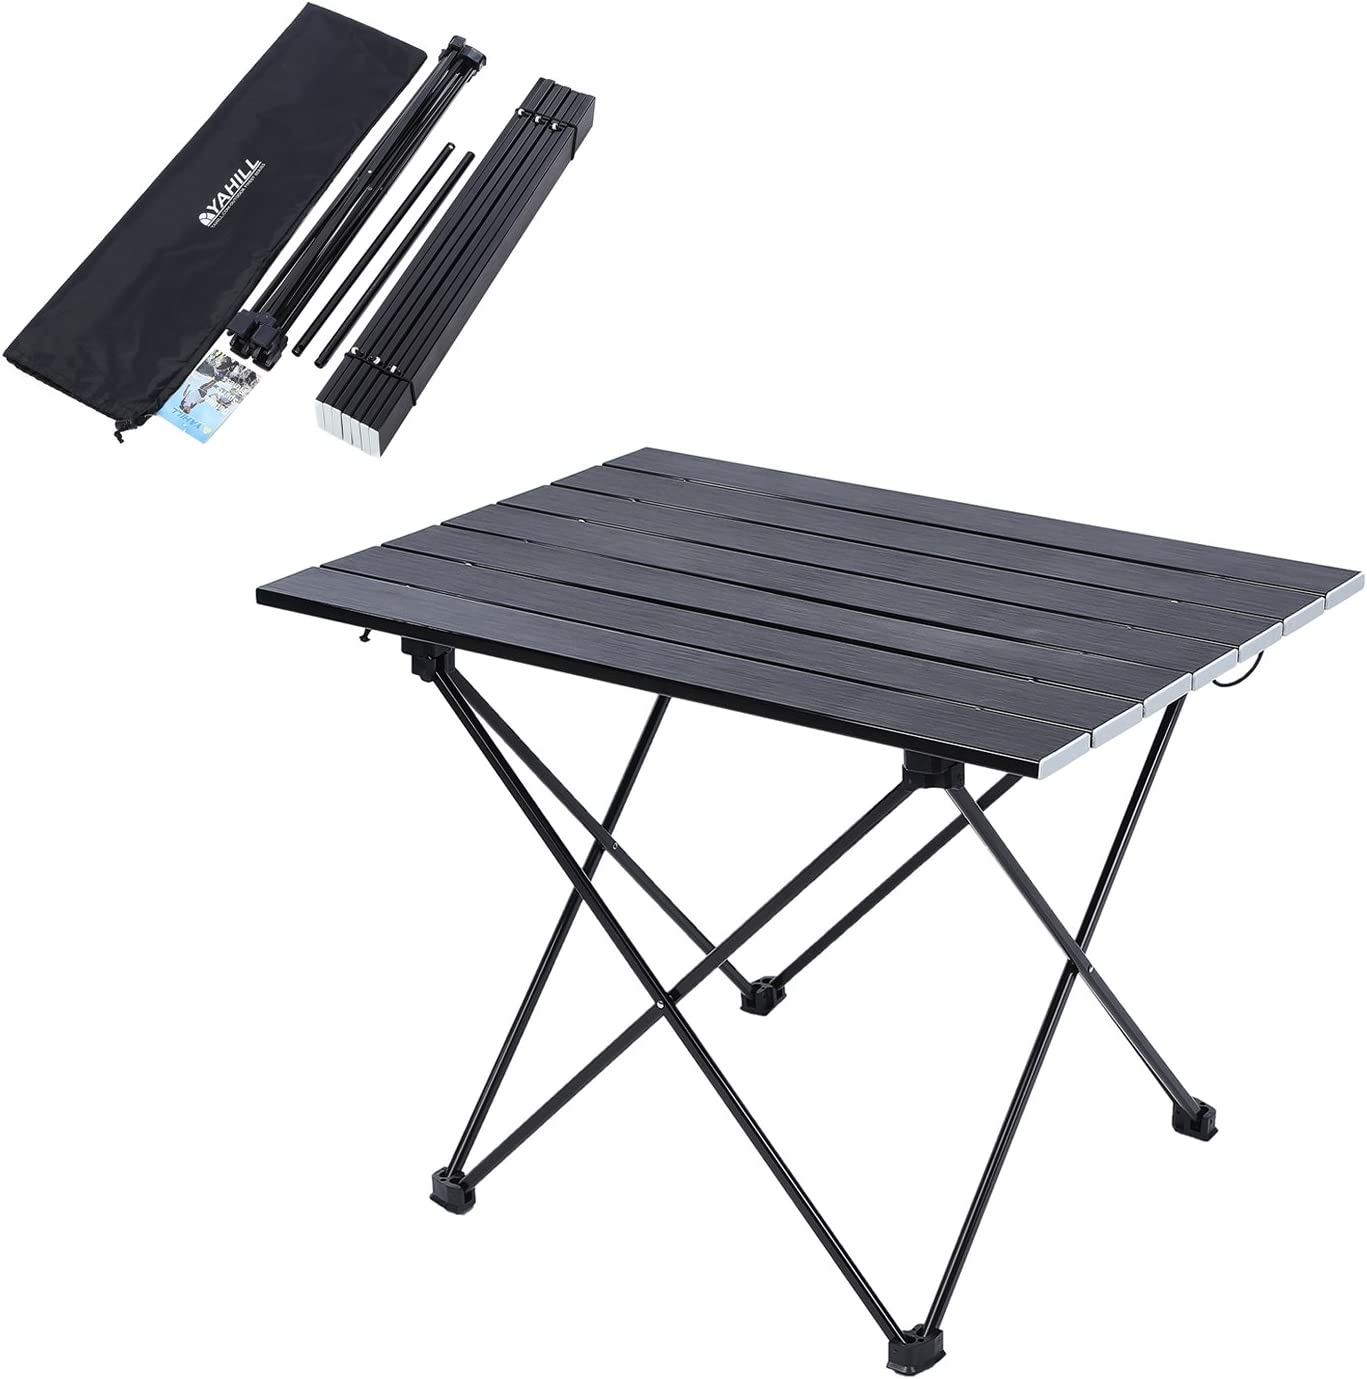 YAHILL Aluminum Folding Collapsible Camping Table Roll up 3 Size with Carrying Bag for Indoor and Outdoor Picnic, BBQ, Beach, Hiking, Travel, Fishing